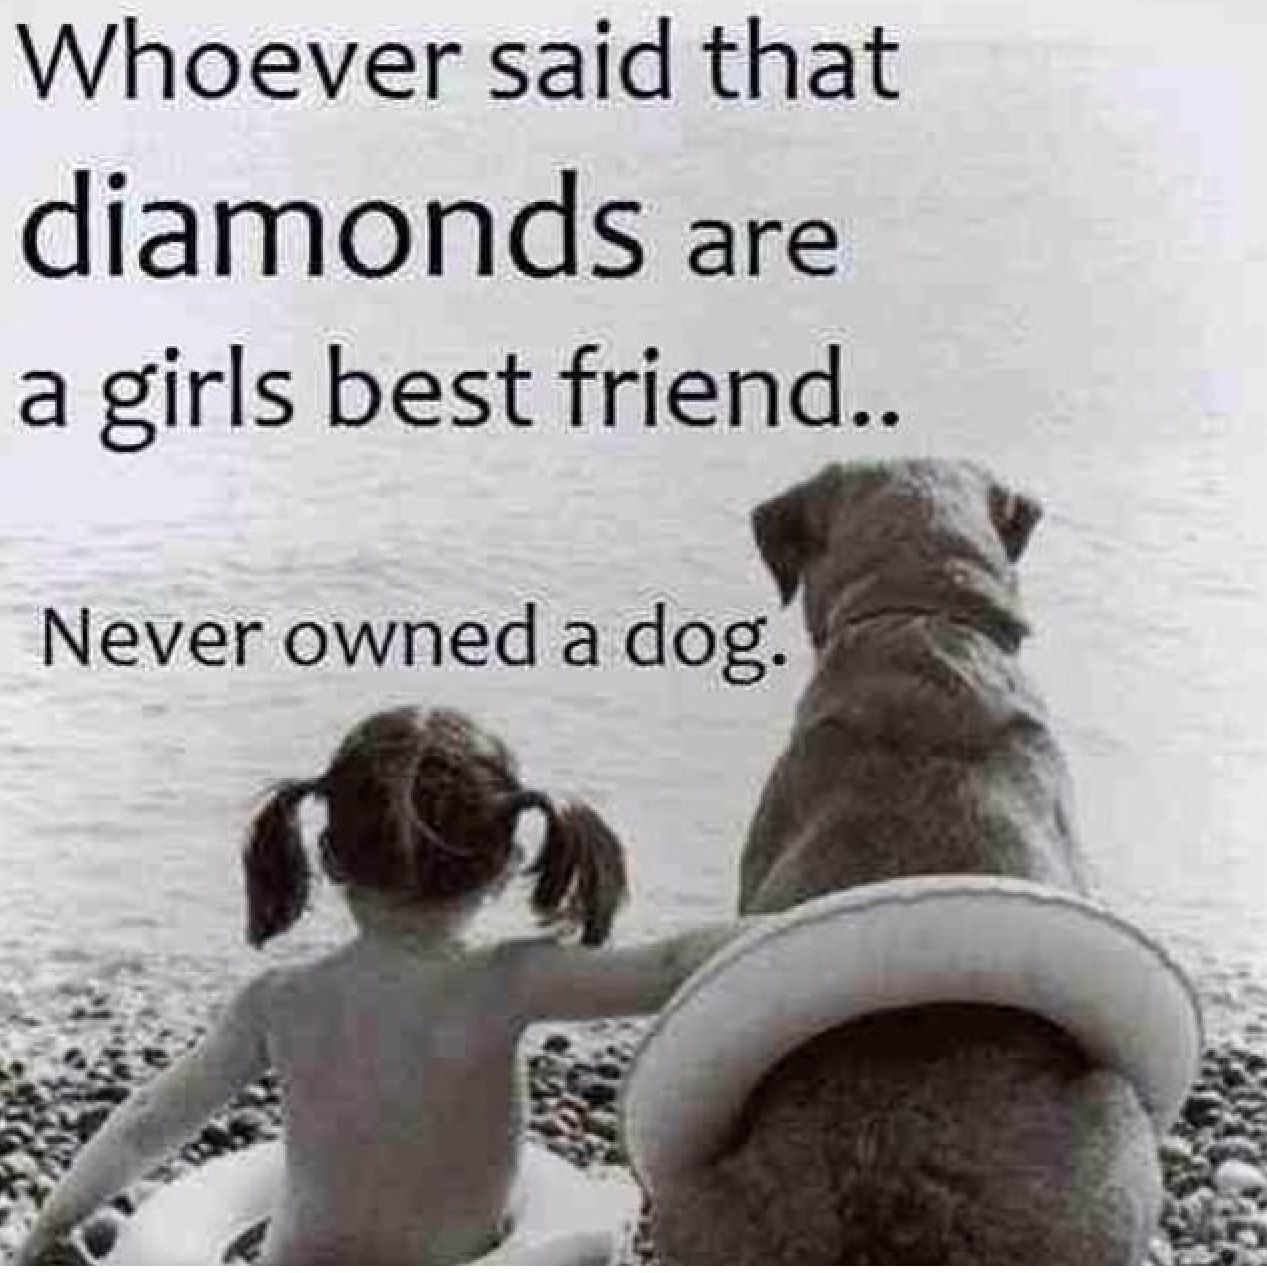 Quotes About Dogs Dogs #life #friends #quotes  Furry Friends  Pinterest  Dog Life .